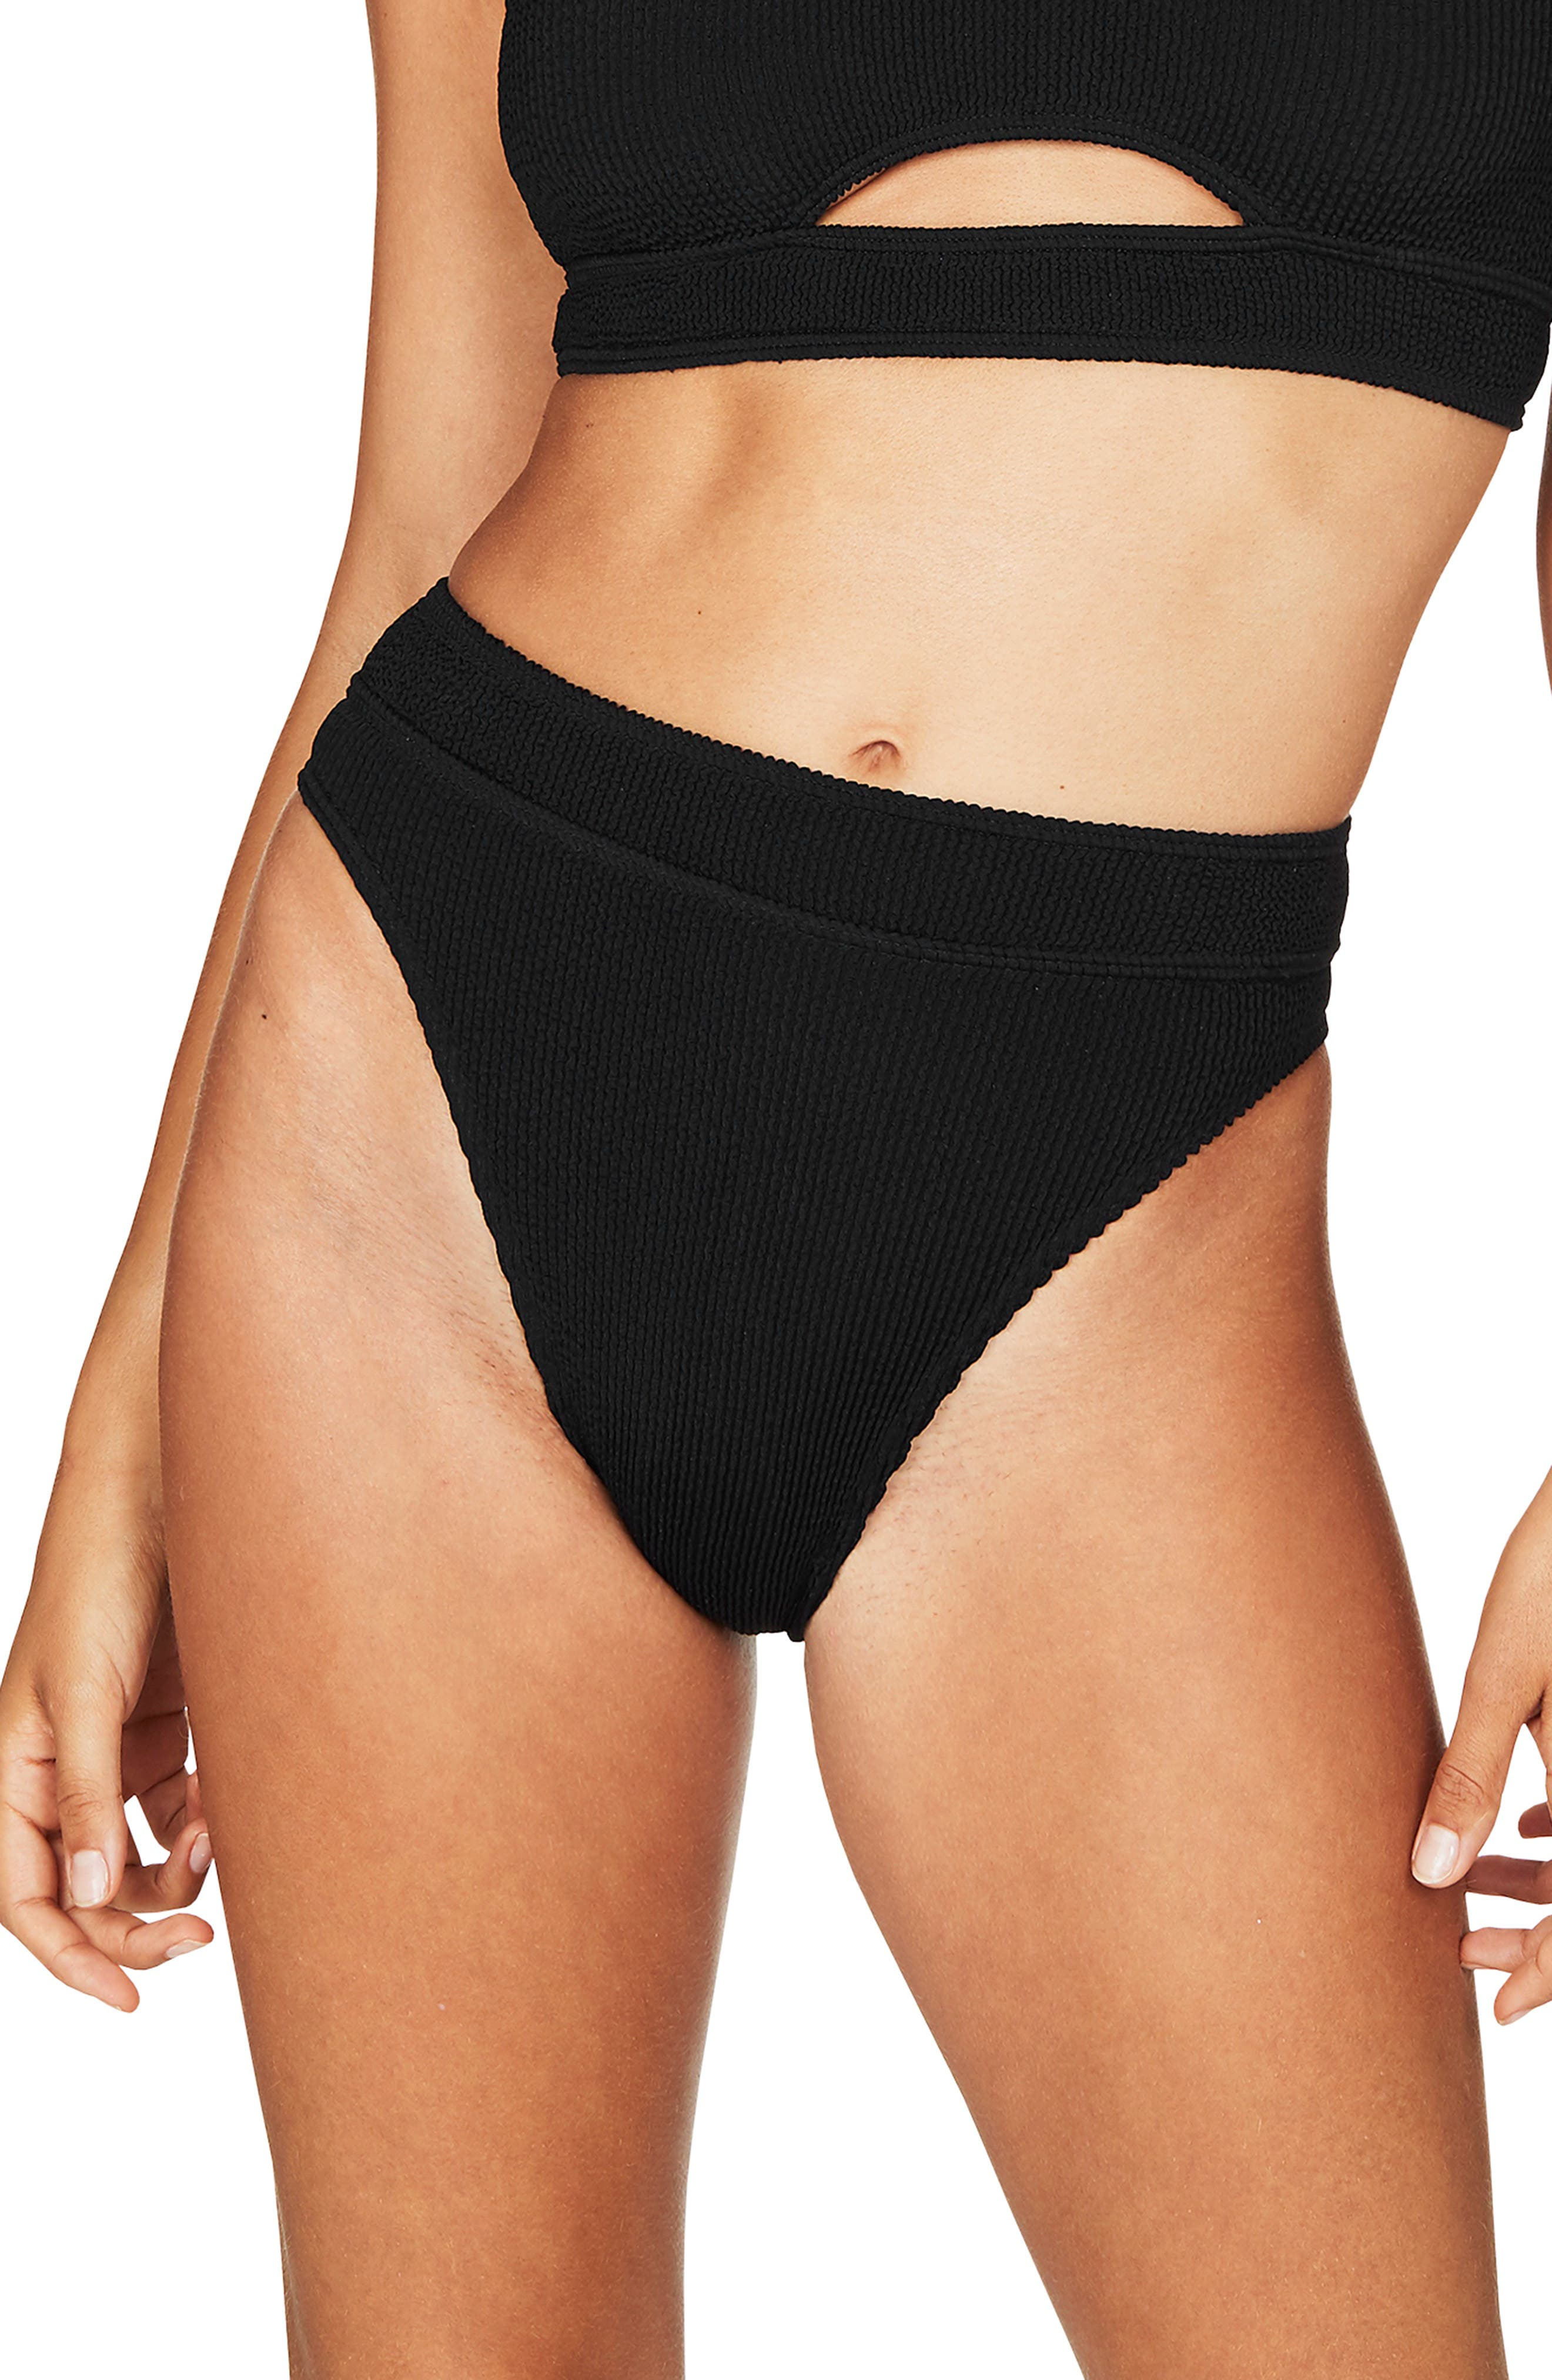 Flaunt it if you got it in these high-waist bottoms cut from stretchy and resilient ribbed MAXXAM fabric with a barely there Brazilian back. Style Name: Bound By Bond-Eye The Savannah High-Waist Ribbed Bikini Bottoms. Style Number: 5770131 1. Available in stores.